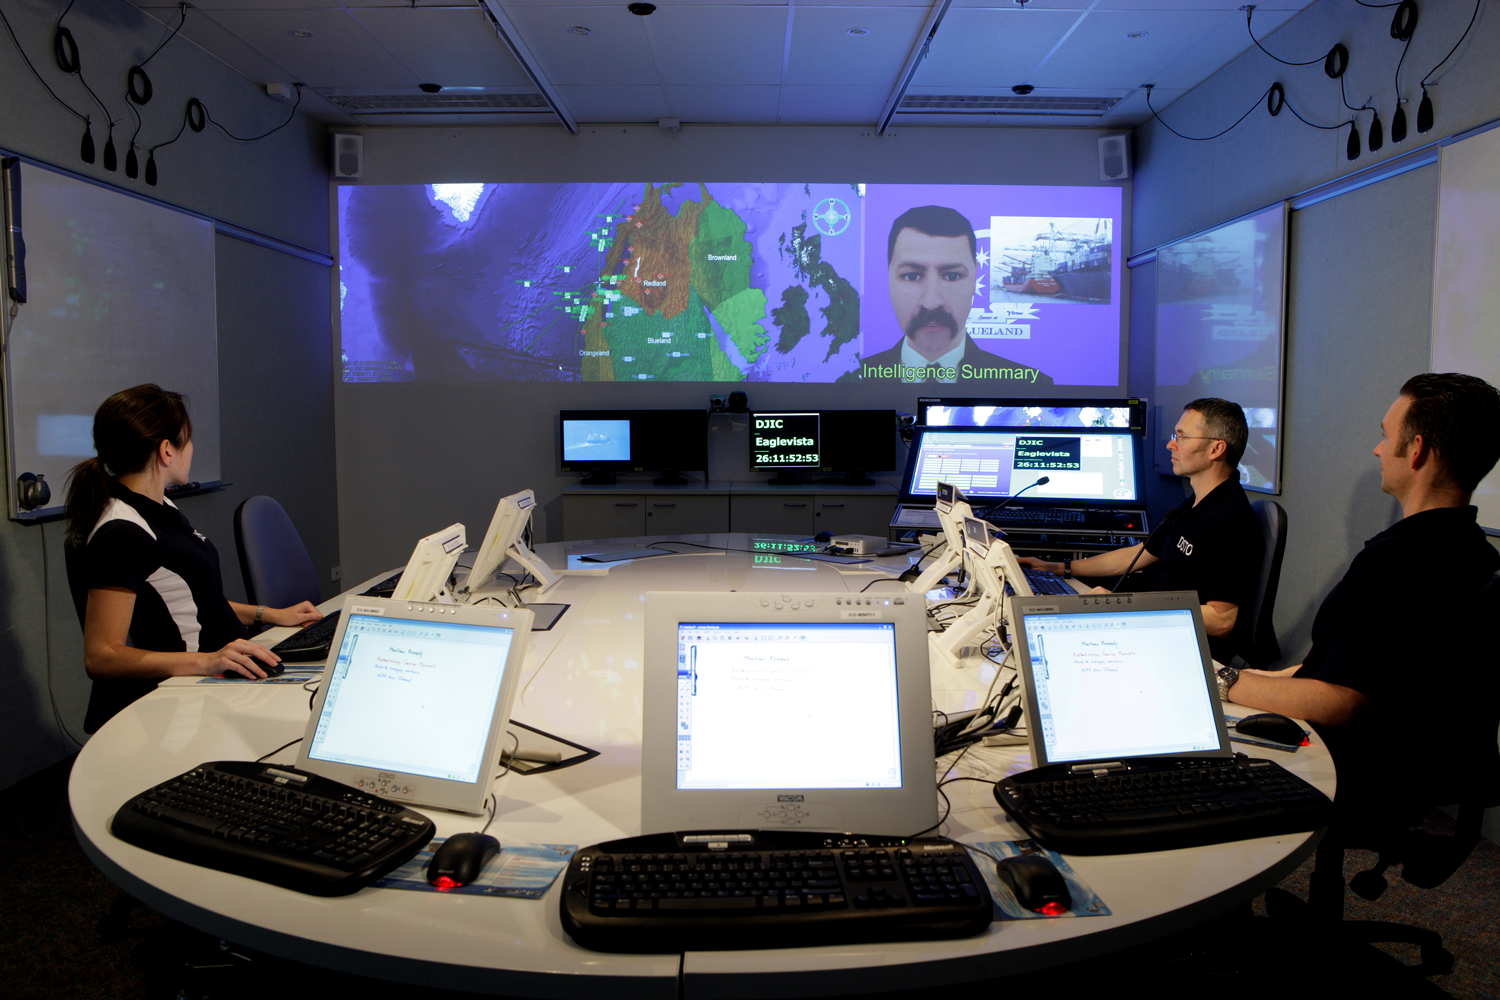 DSTO's Intense Collaboration Space laboratory is controlled by the DSTO-developed and now open-sources Livespaces Operating System for distributed collaboration within smart meeting room environments. On the projected screens a Virtual Adviser (right) is briefing meeting participants on a military scenario with the aid of a Virtual Battlespace (left). The Virtual Adviser and Virtual Battlespace software were also developed by DSTO.